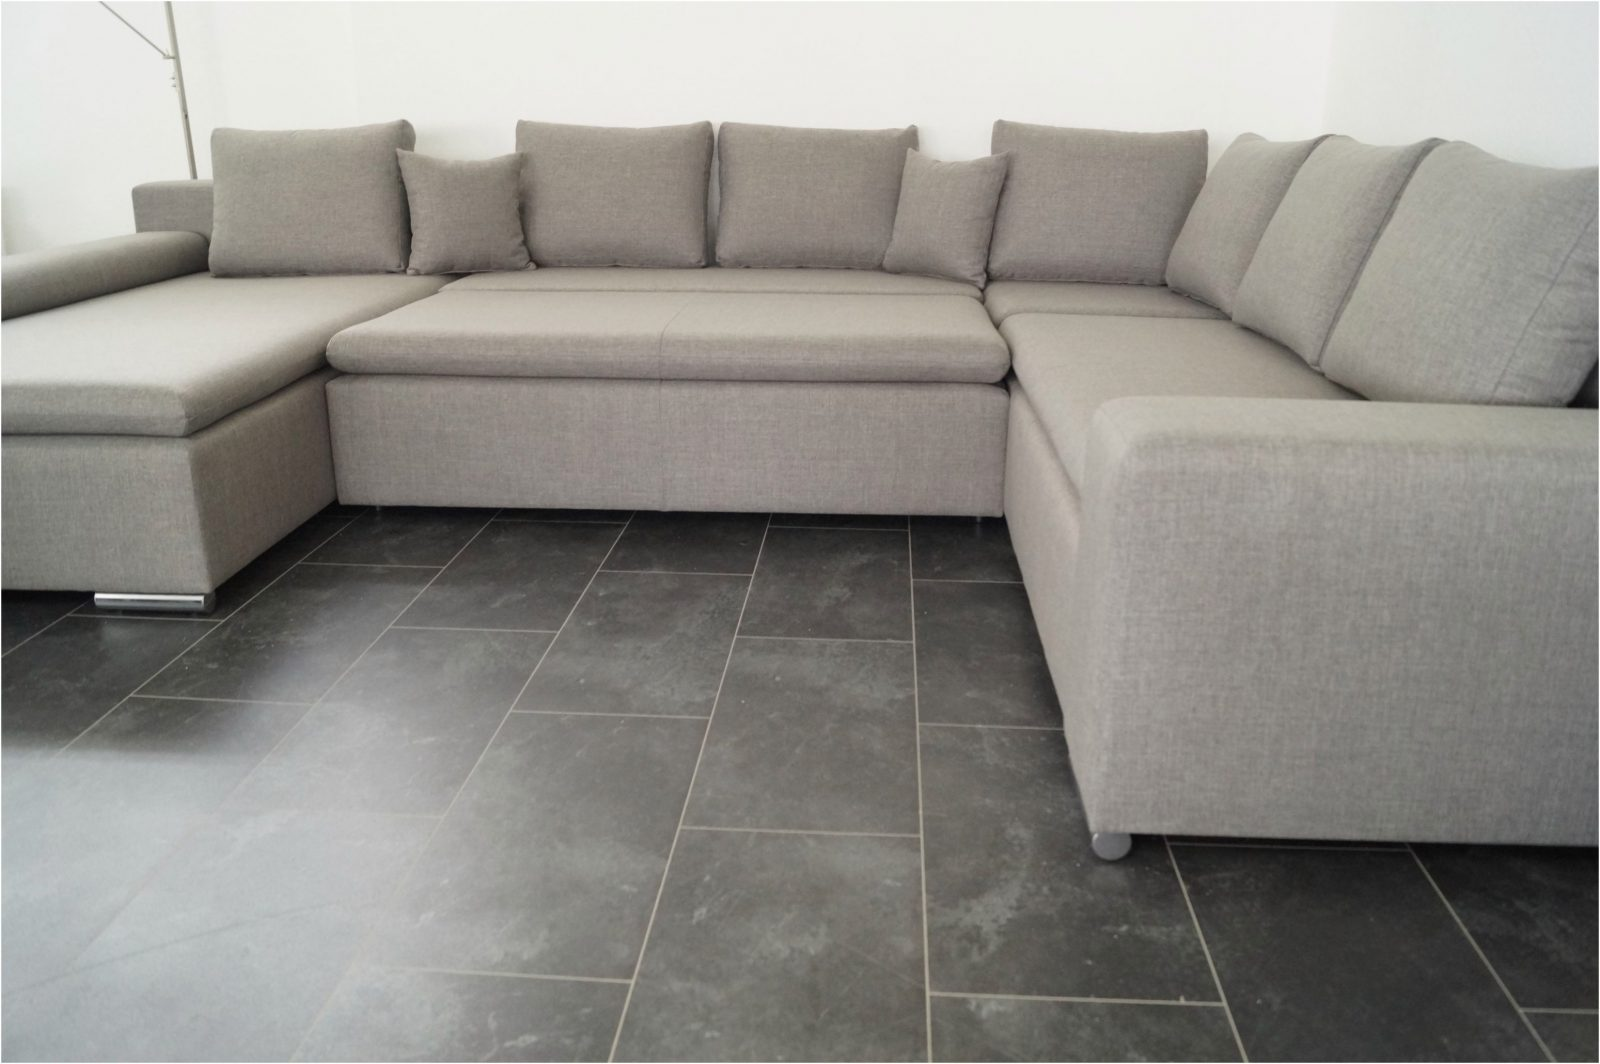 Big Sofa Billig 40 Fein Big Sofa Billig Kaufen – Schtimm Planen Von von Big Sofa Billig Kaufen Photo